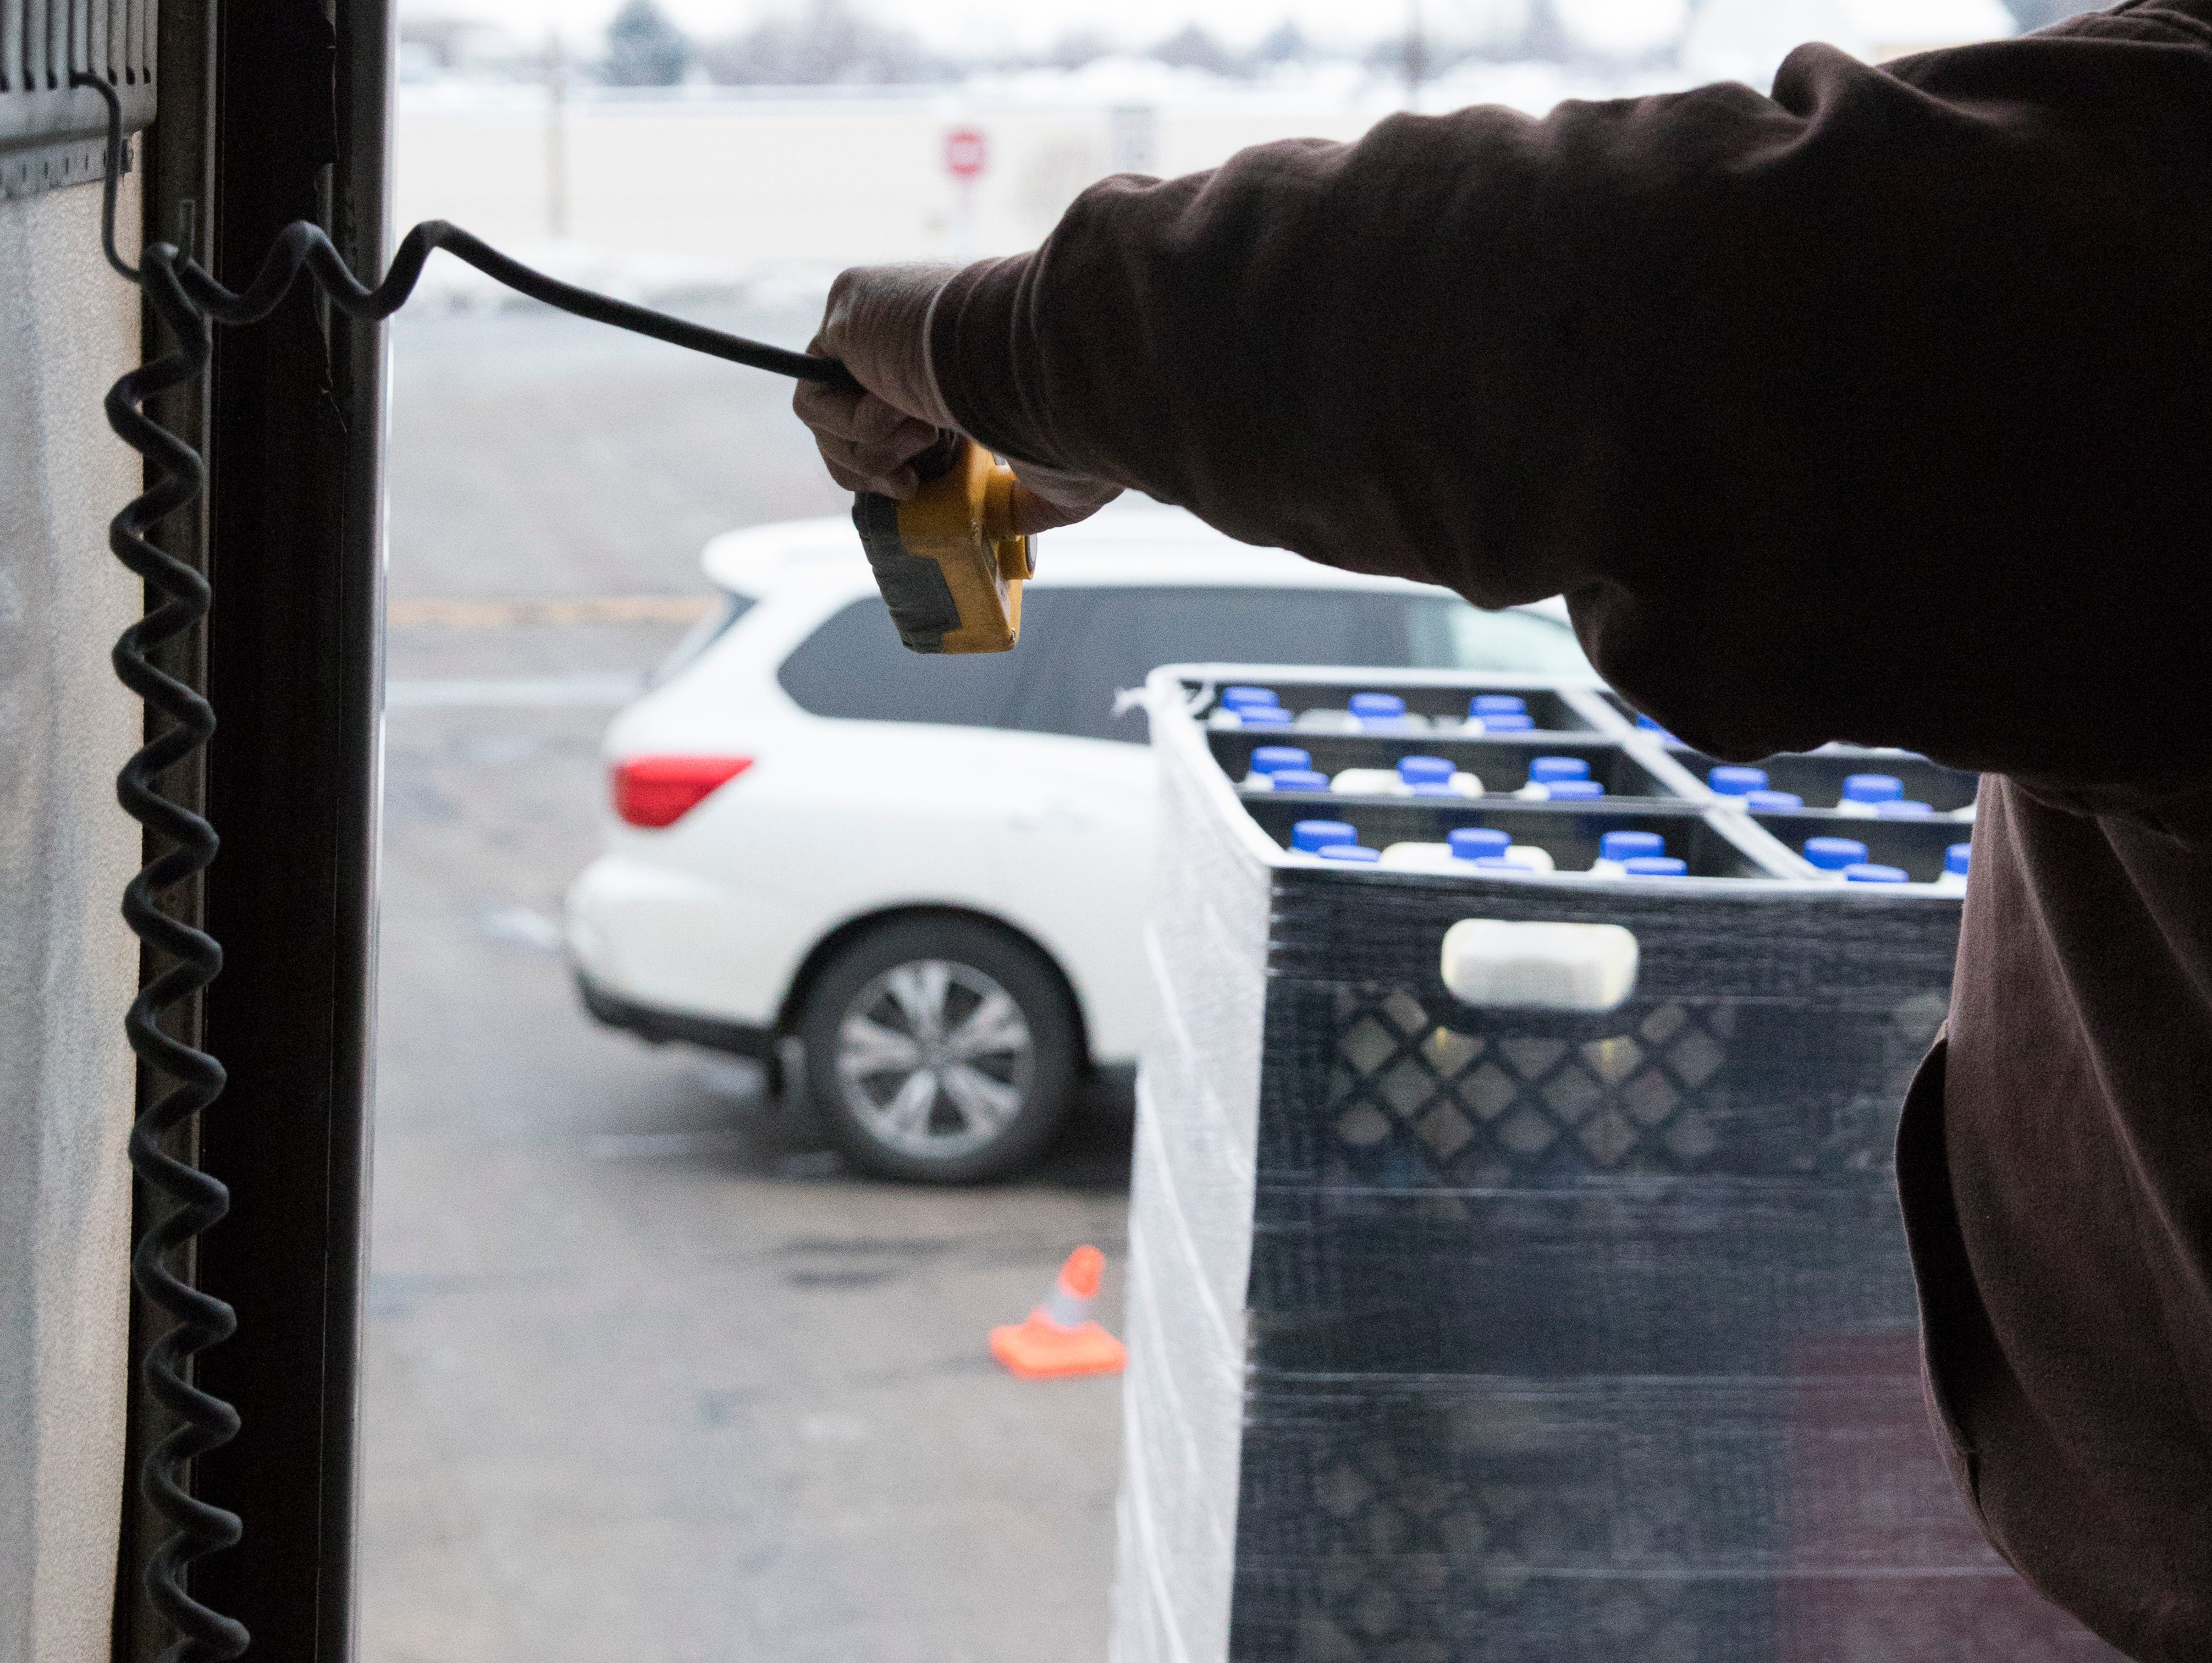 Von Davis from the Mid-Ohio Food bank uses a remote to lower the donated milk to volunteers as the Mobile Market gets ready to serve Ross County residents on Jan. 15, 2019.